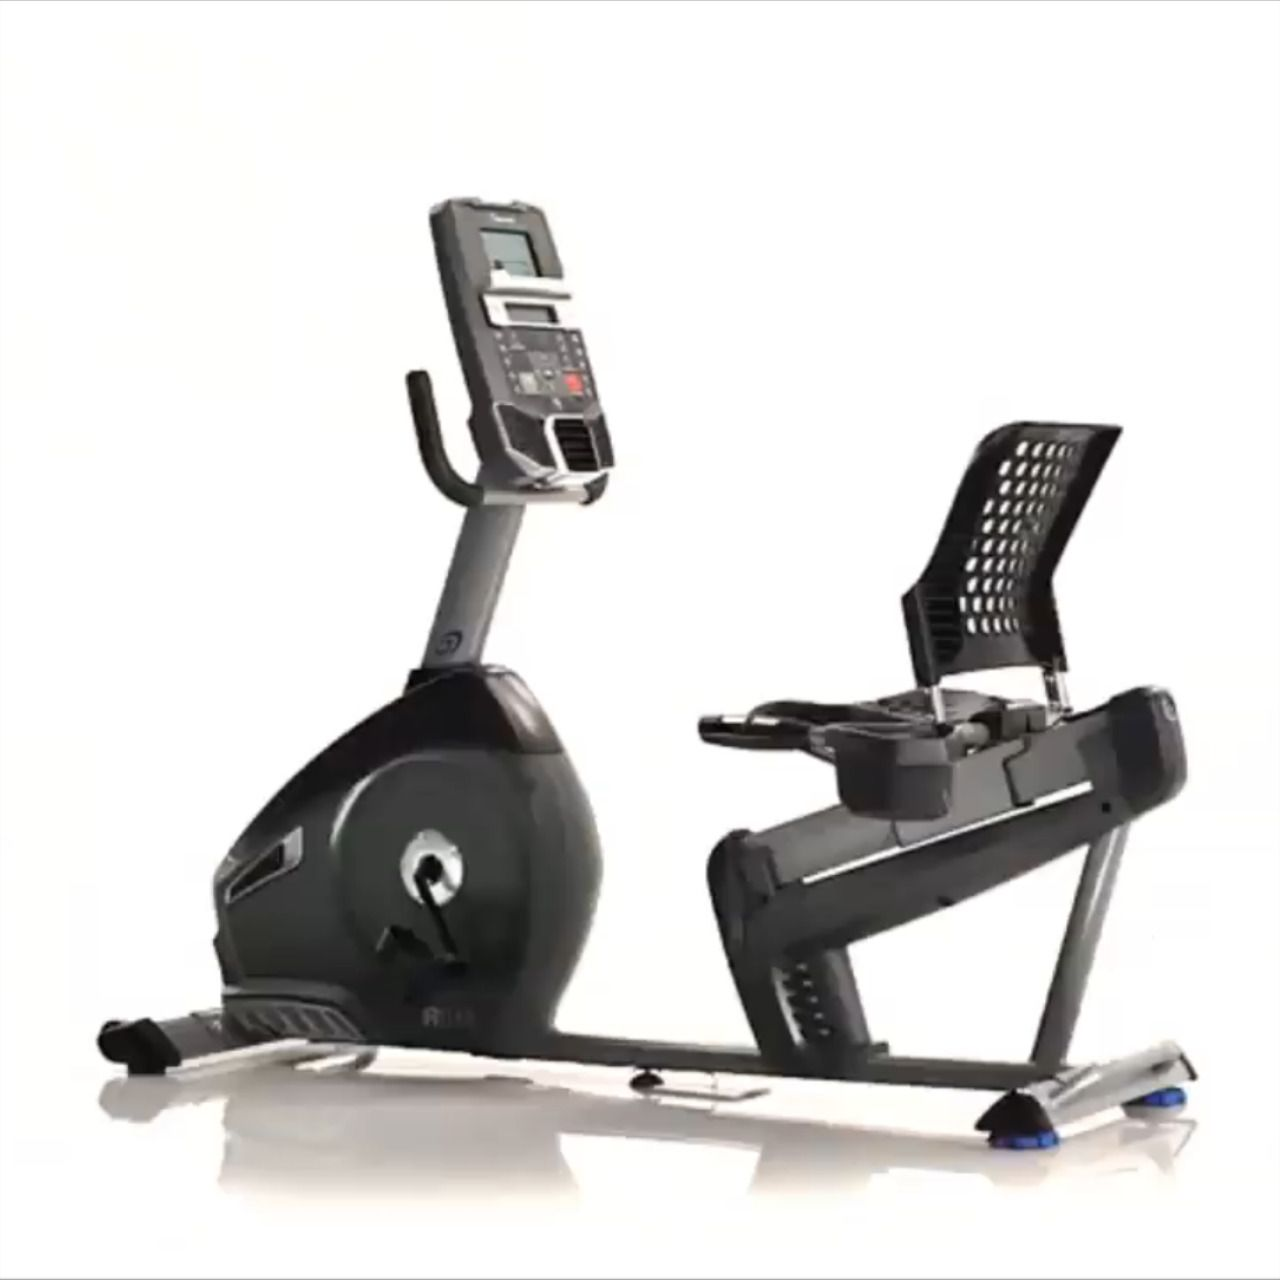 Stationary Bike Vs Elliptical Bike Vs Treadmill Schwinn 230